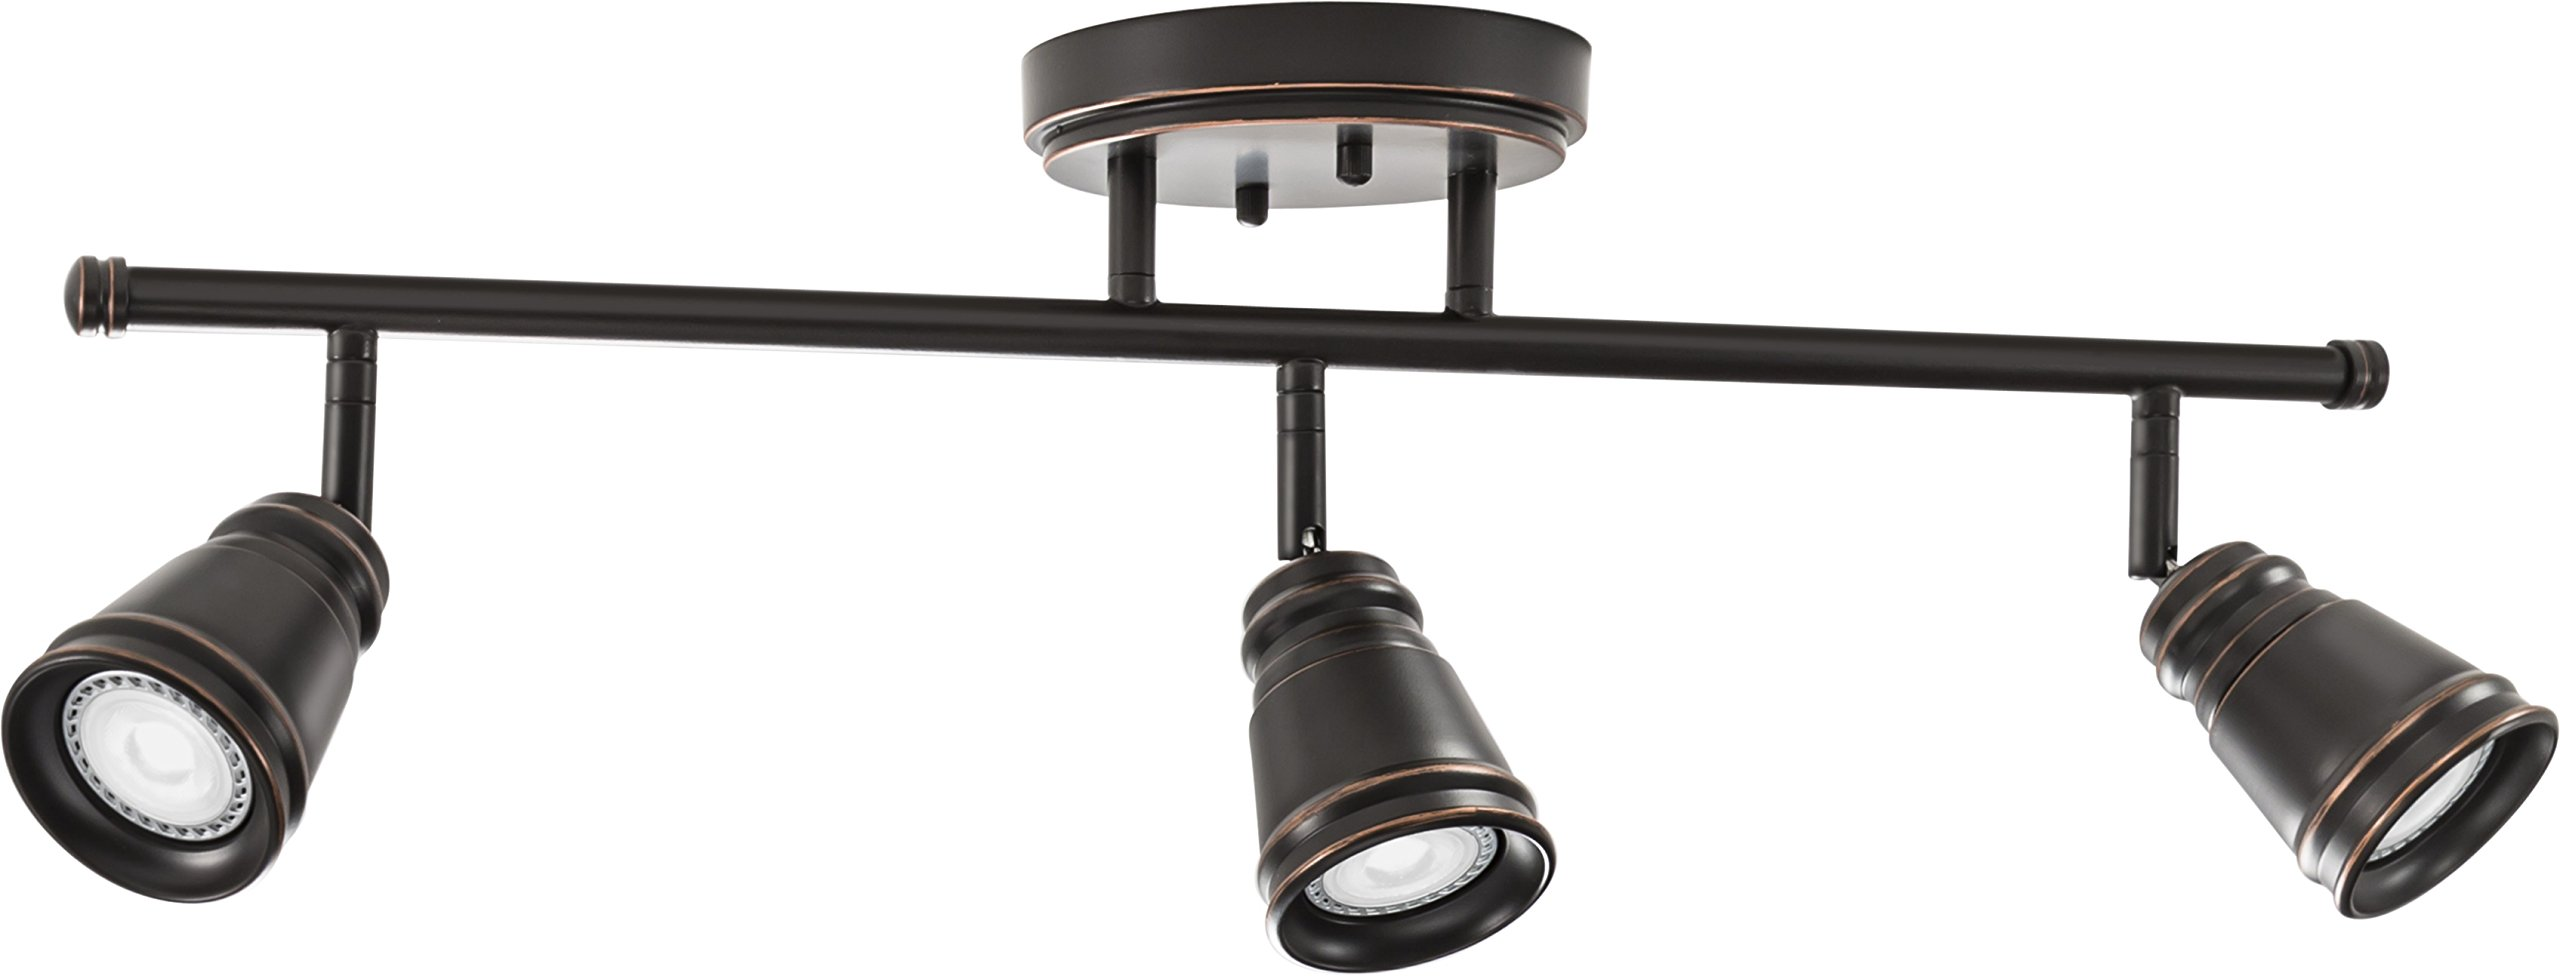 Lithonia Lighting LTFPMILL MR16GU10 LED 27K 3H ORB M4 Led 3 head Peppermill Fixed Track Kit, 21W, Oil-Rubbed Bronze by Lithonia Lighting